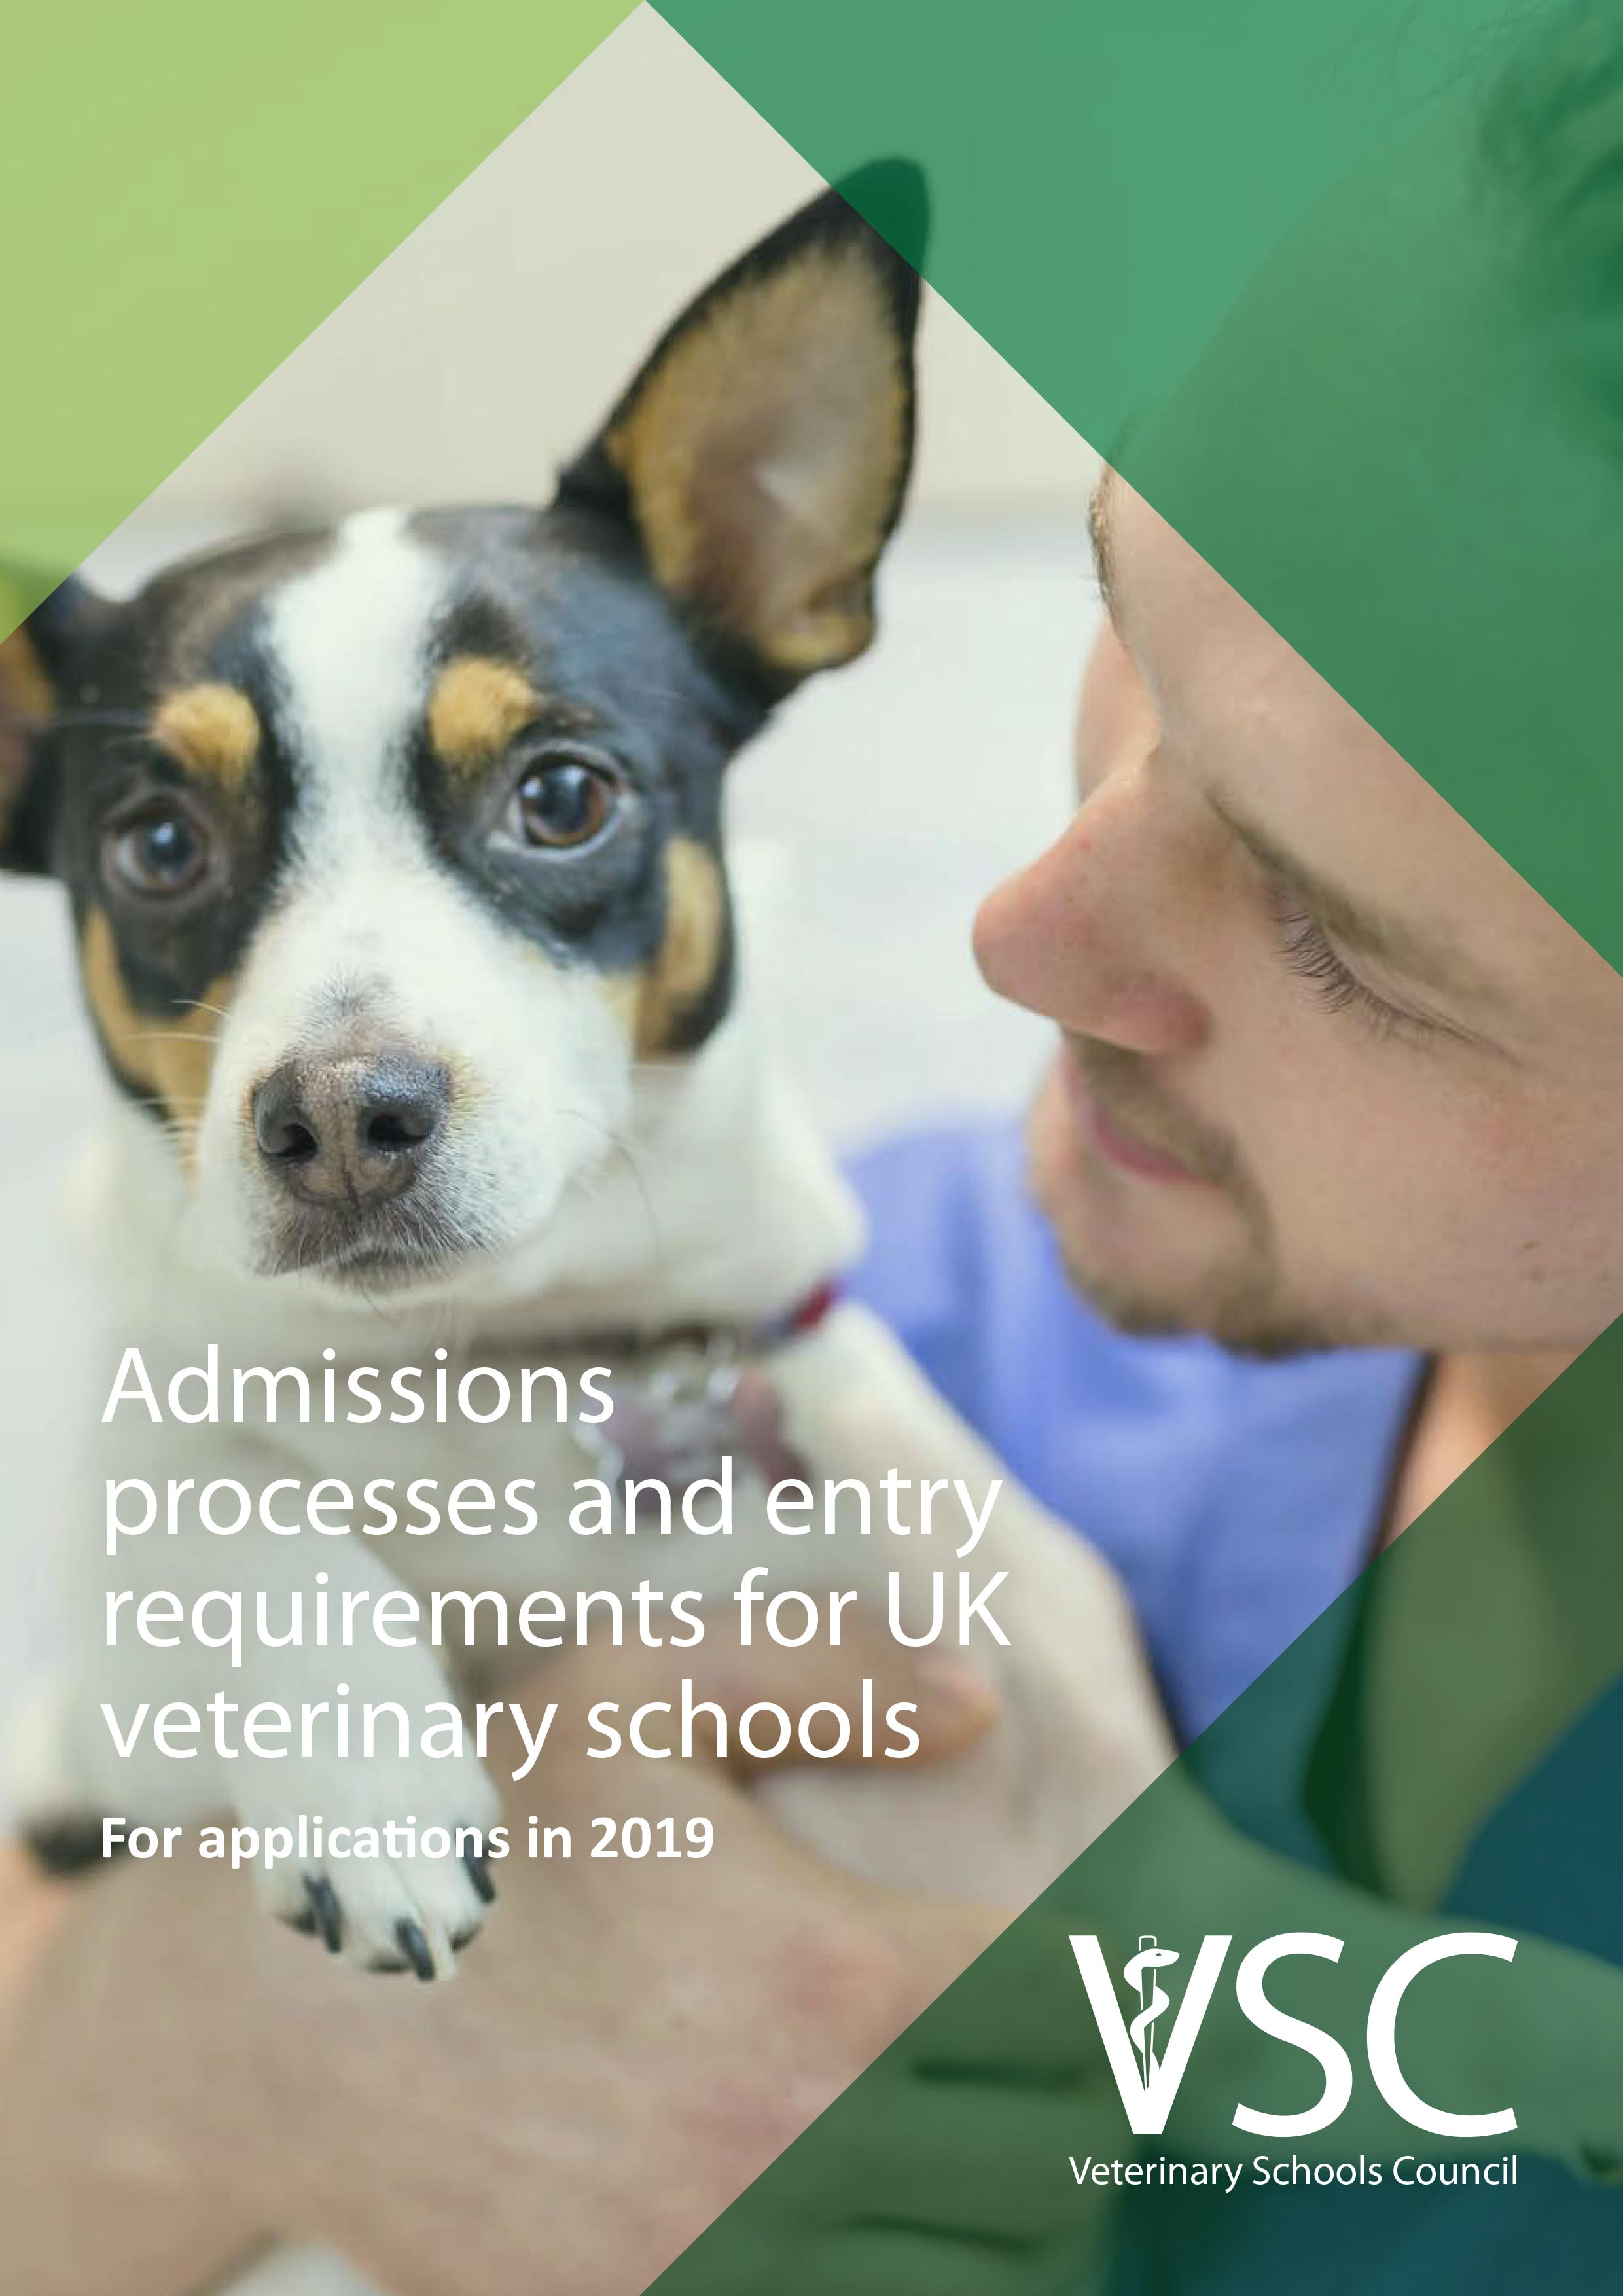 Admissions processes and entry requirements for UK veterinary schools